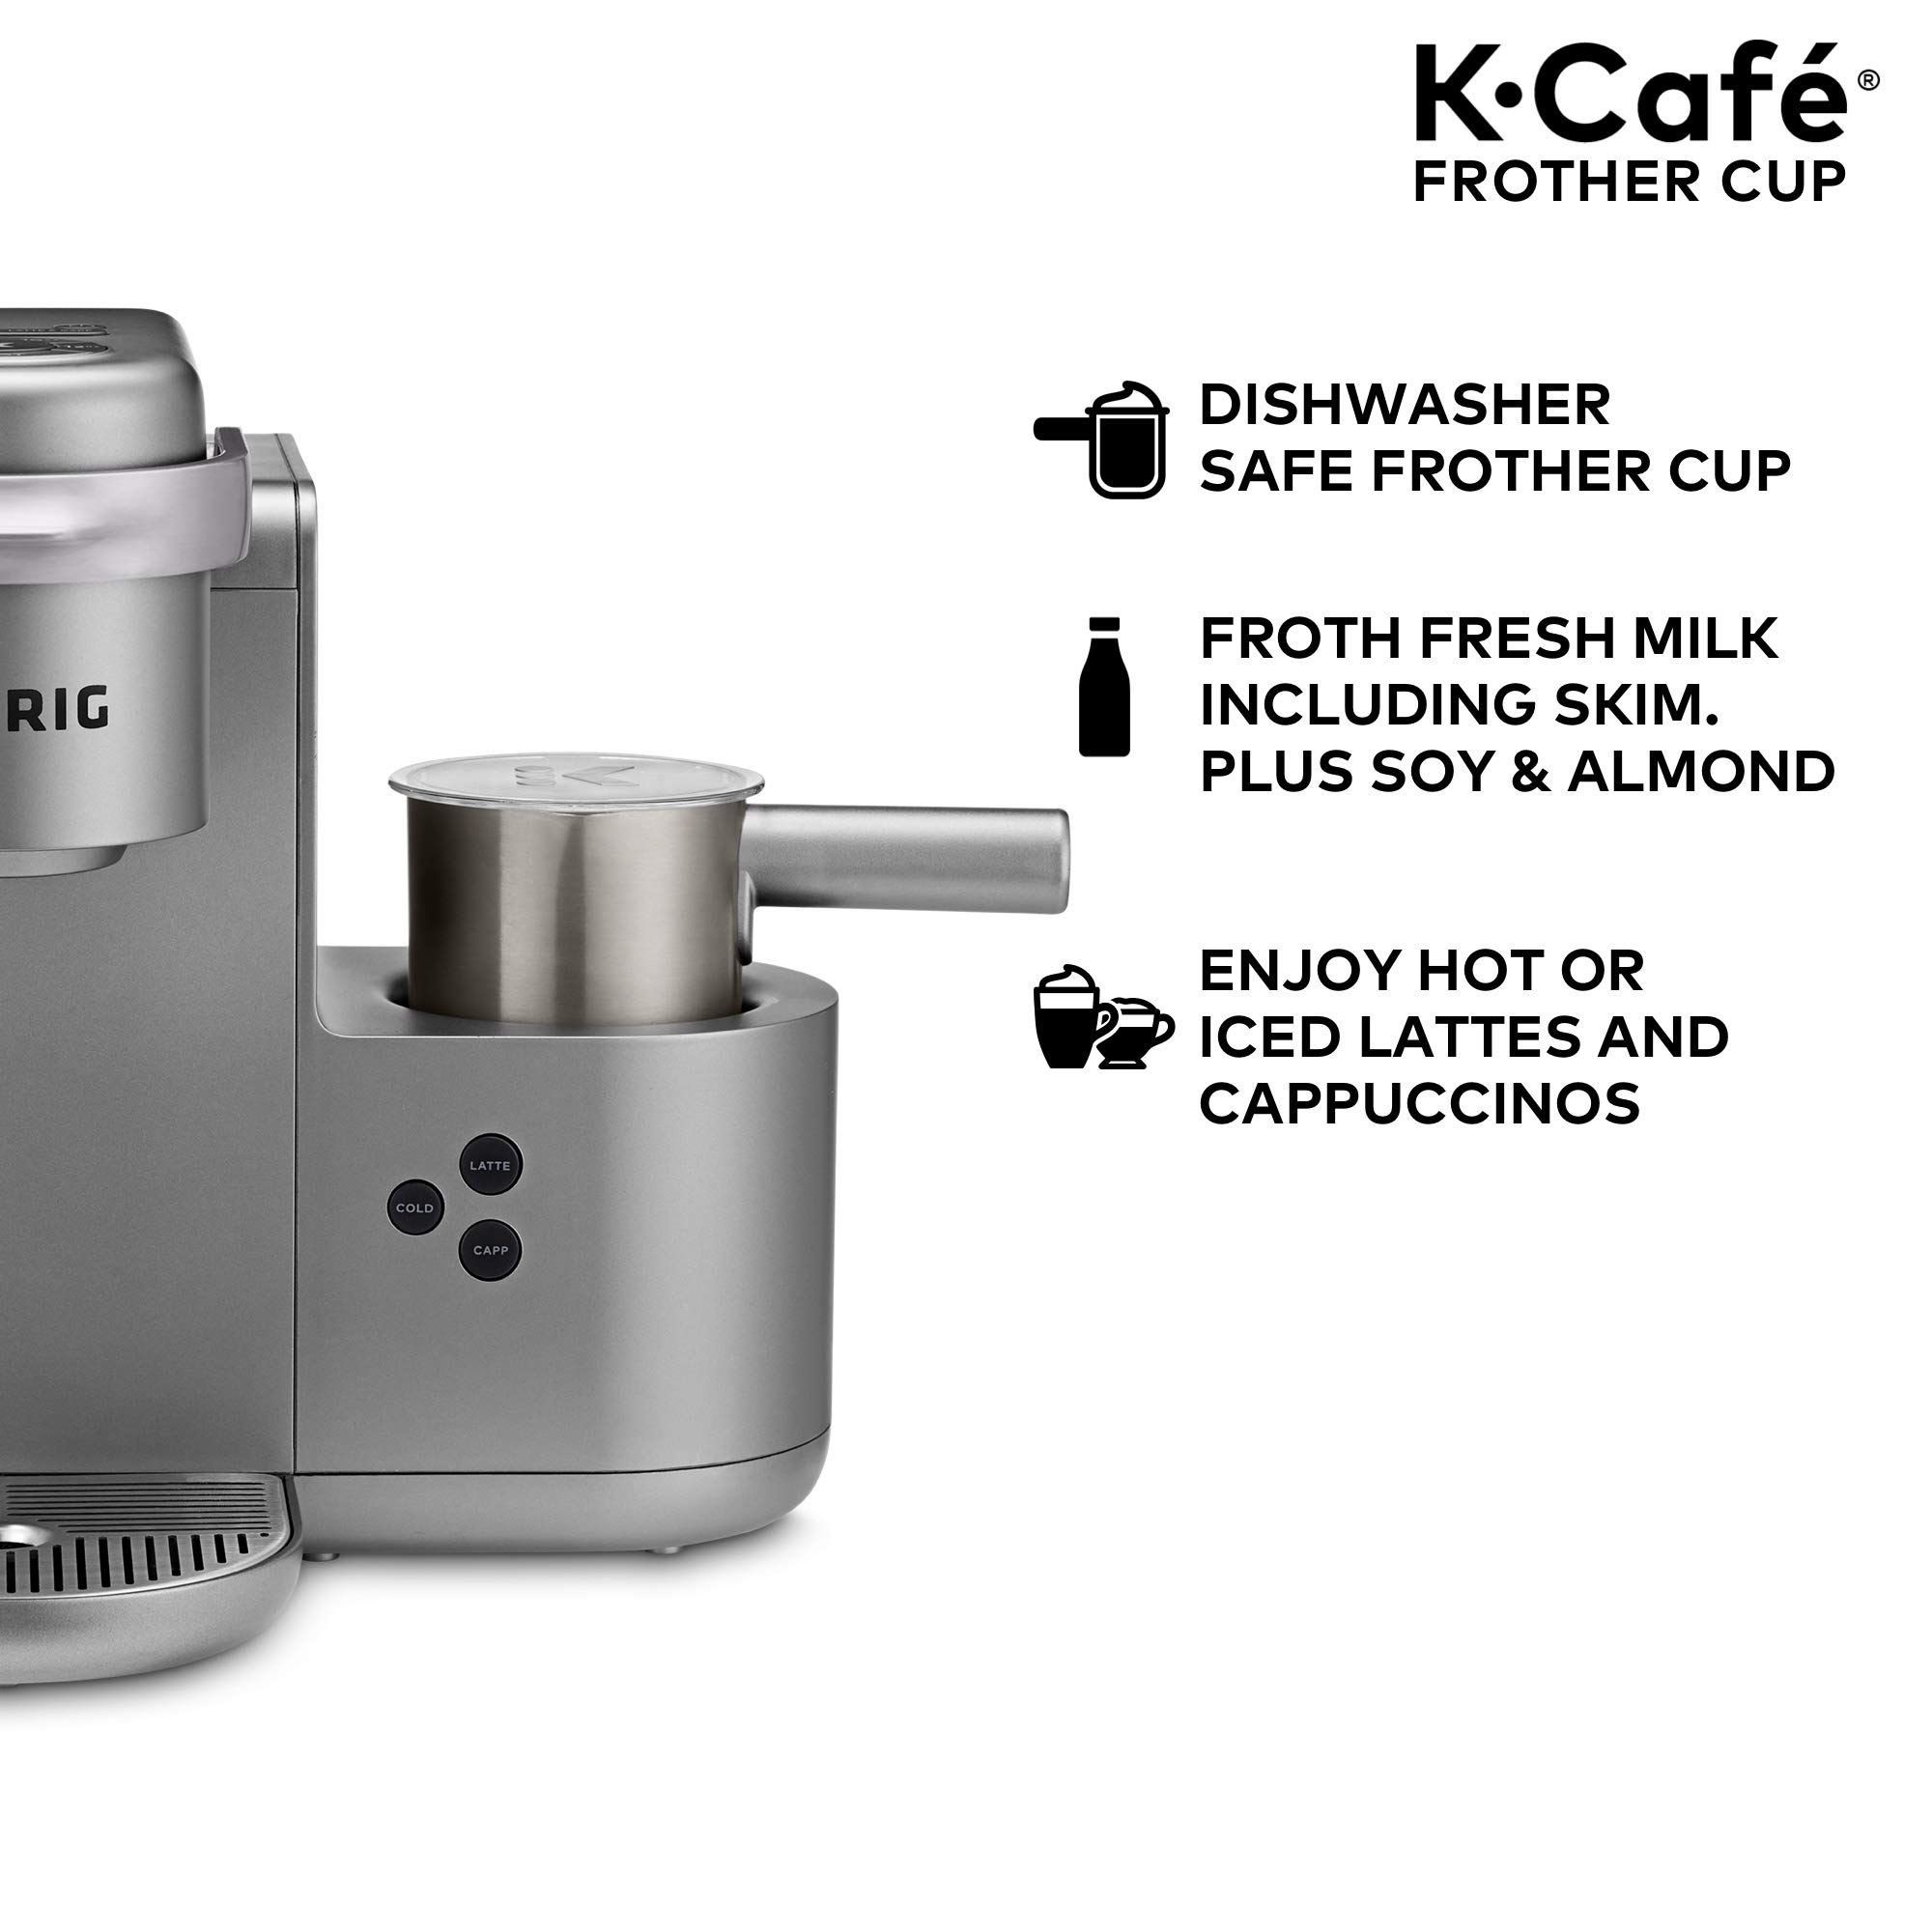 Keurig K-Café Milk Frother, Works with all Dairy and Non-Dairy Milk, Hot and Cold Frothing, Compatible with Keurig K-Café Coffee Makers Only, Nickel by Keurig (Image #5)